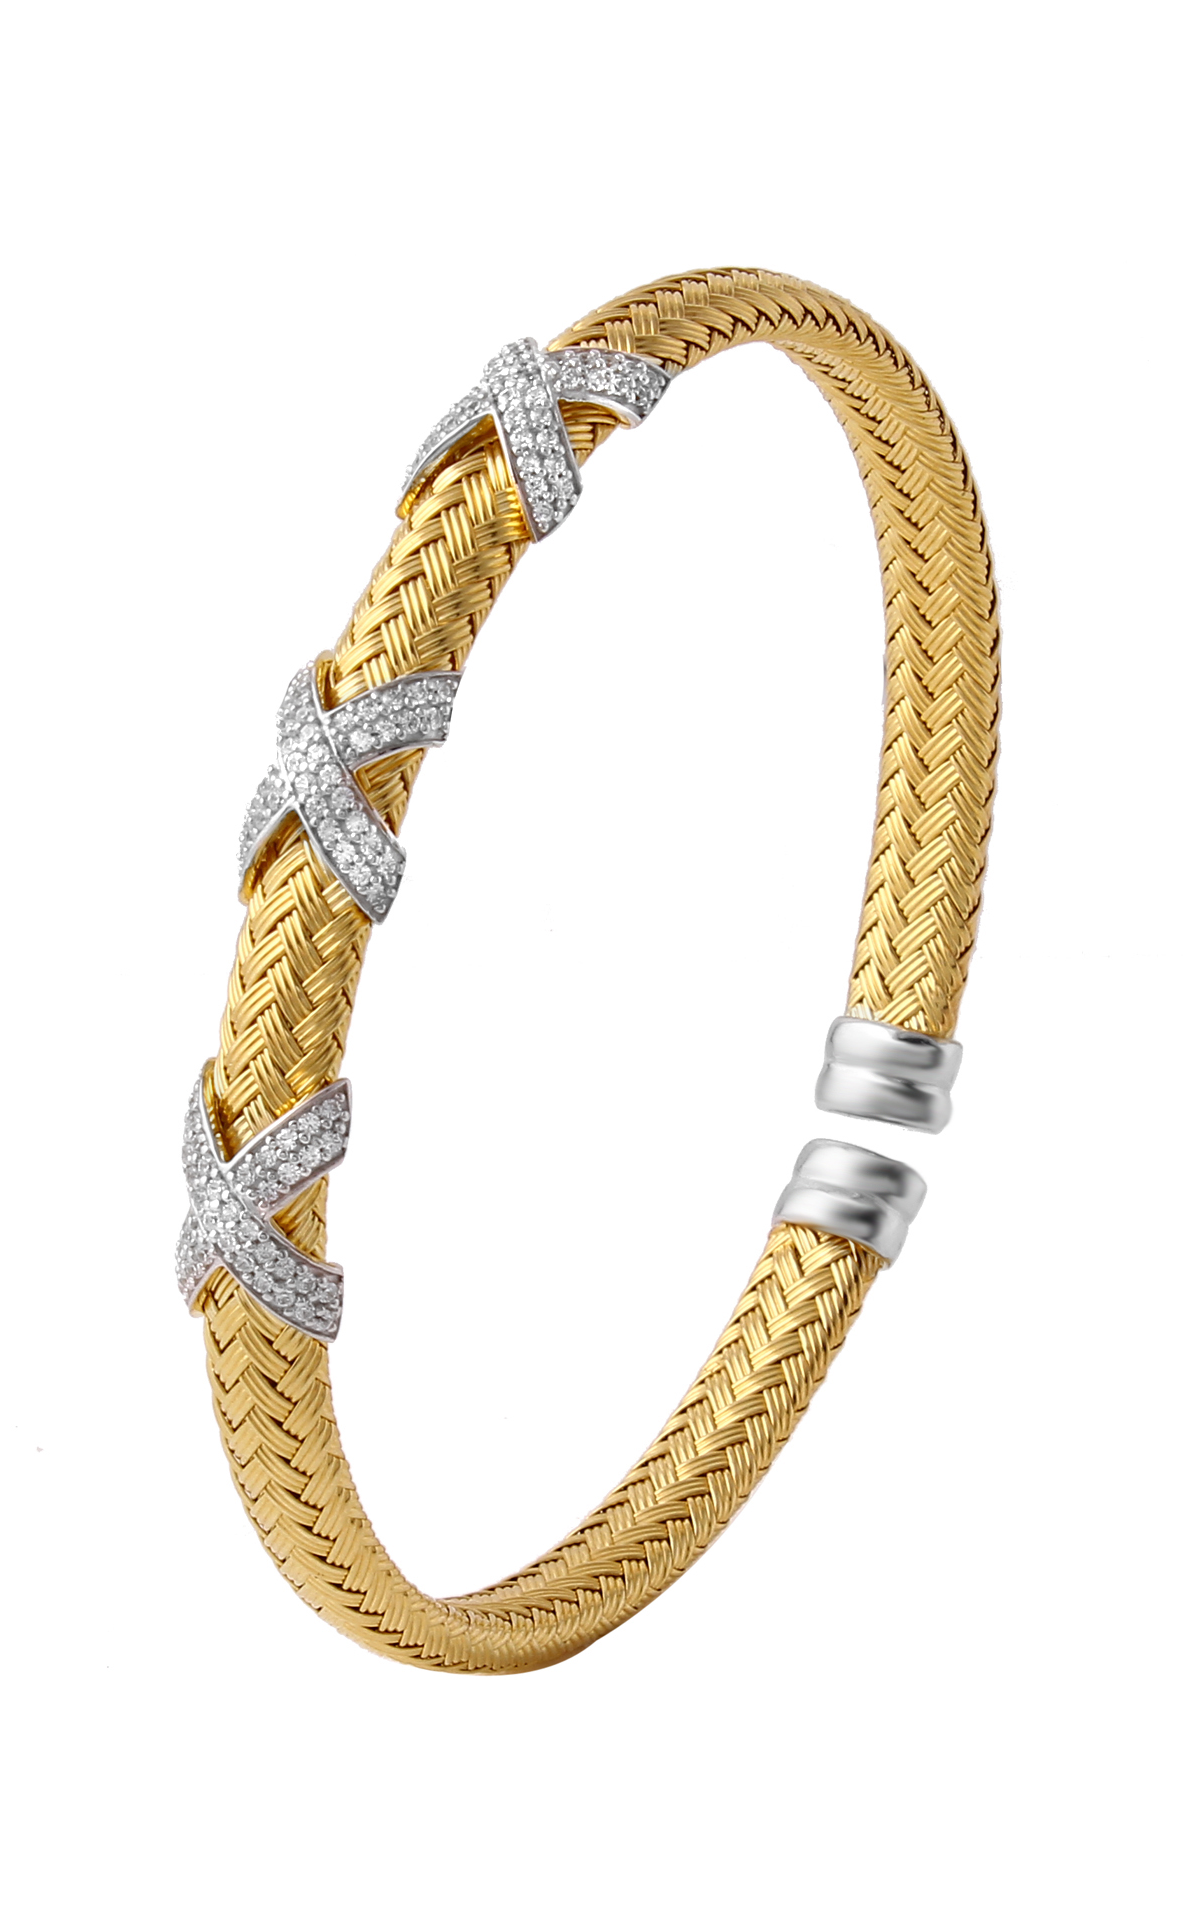 Charles Garnier Paolo Collection Bracelet MLC8061YWZ product image